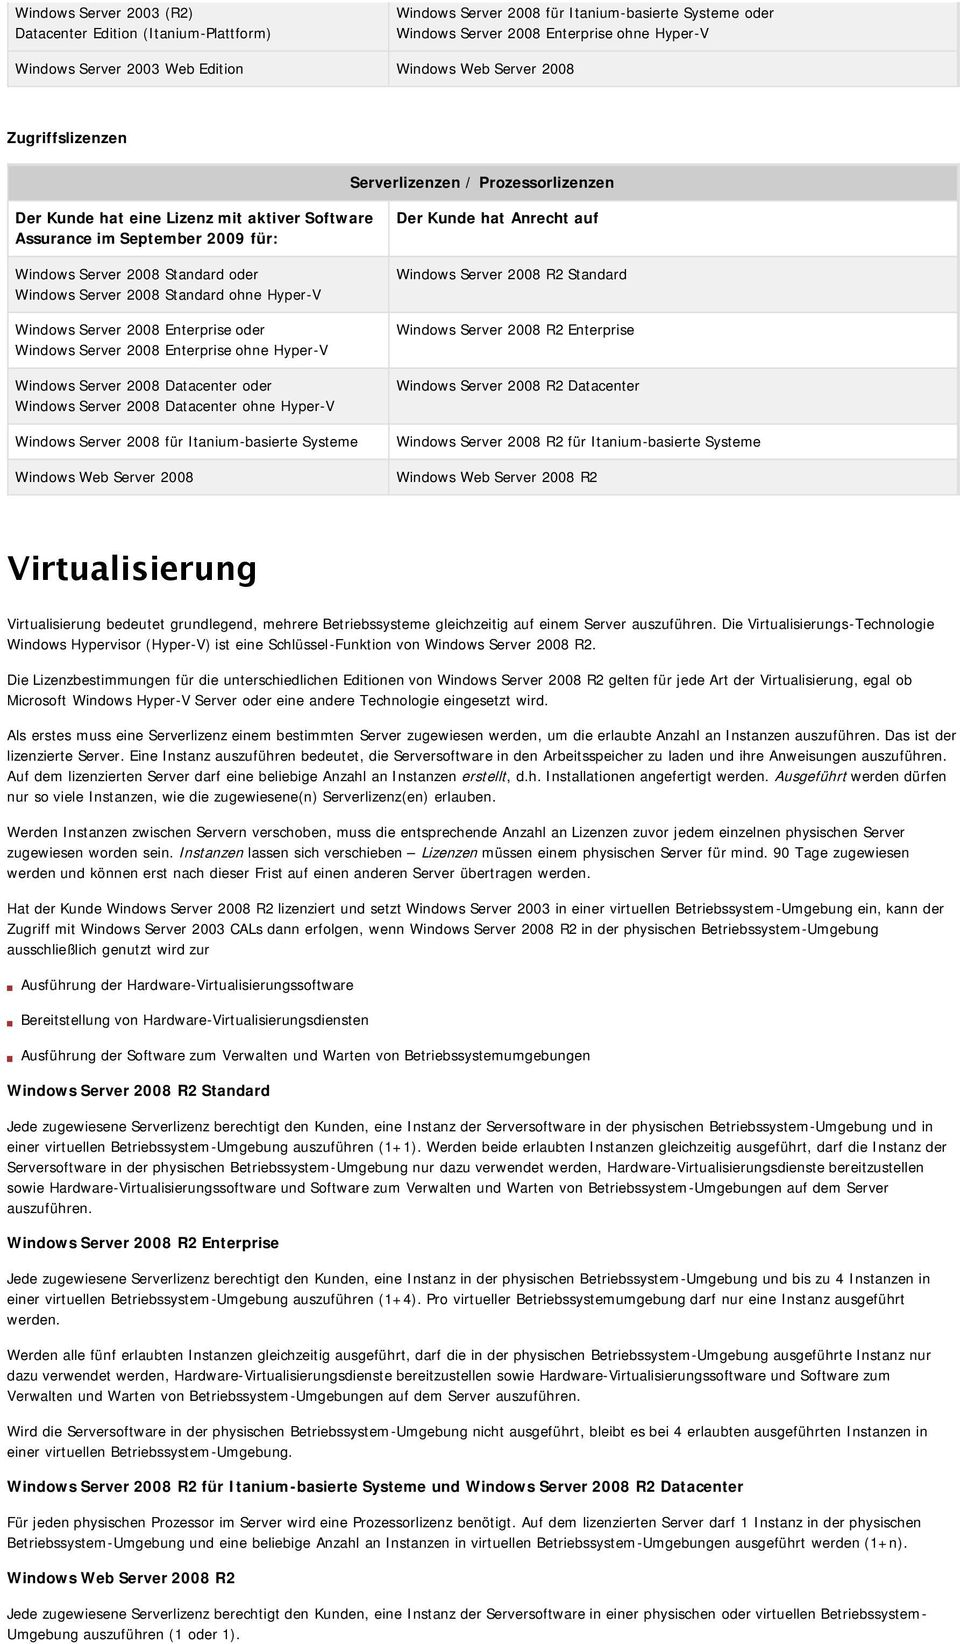 2008 Datacenter ohne Hyper-V Windows Server 2008 für Itanium-basierte Systeme Windows Web Server 2008 Der Kunde hat Anrecht auf Virtualisierung Virtualisierung bedeutet grundlegend, mehrere